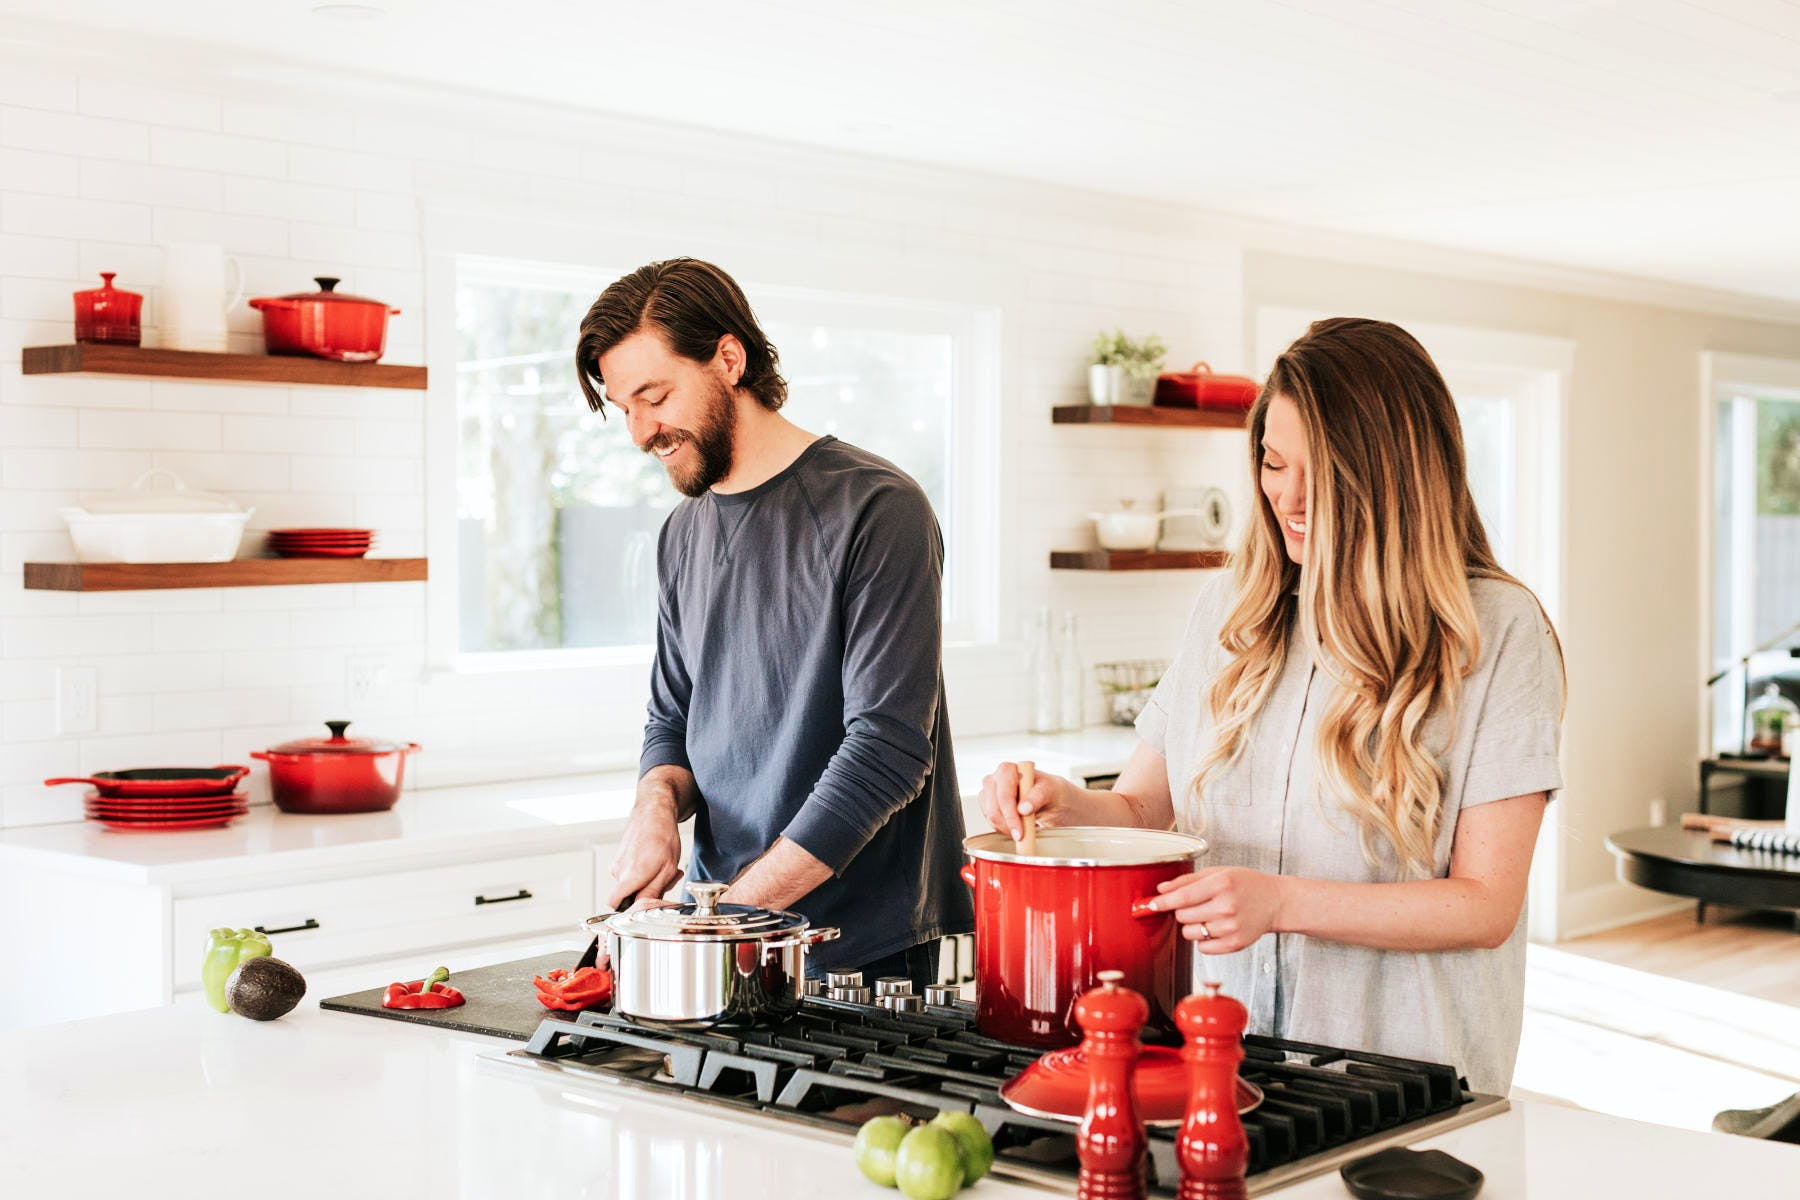 Image of becca tapert O7sK3d3TPWQ unsplash 1 in {{Tips and advice for keeping your kitchen clean and disinfected}} - Cosentino